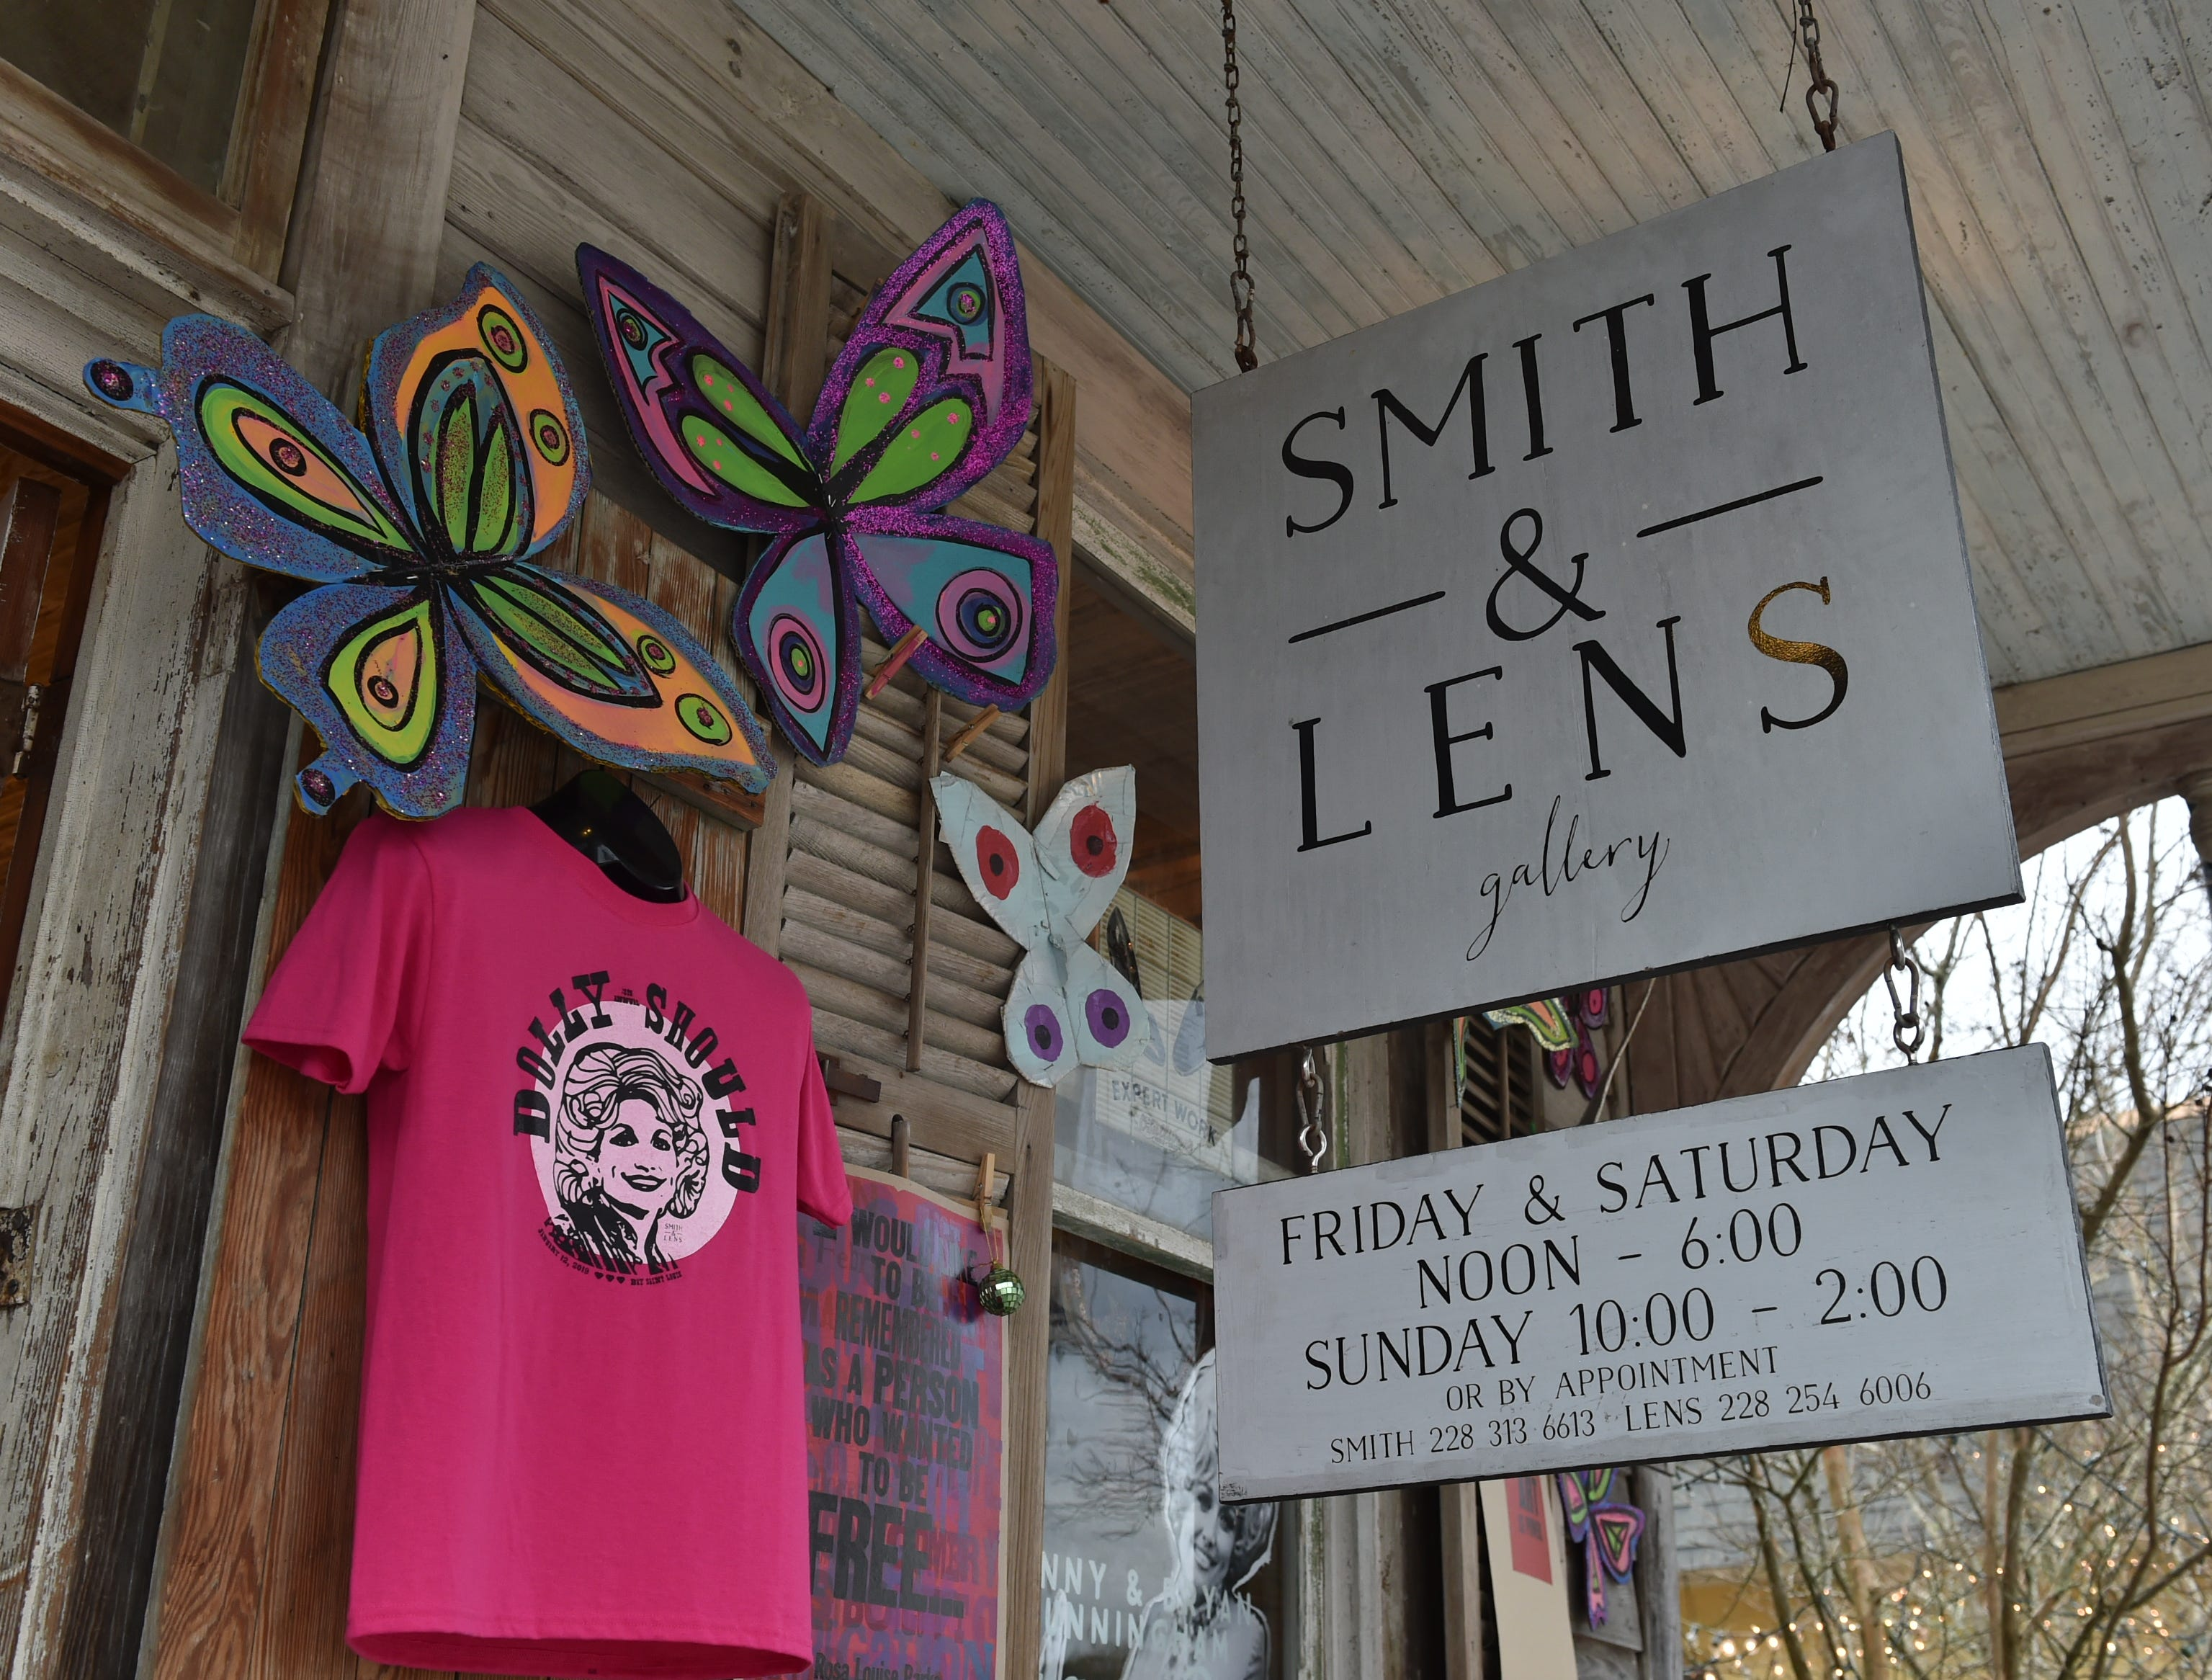 The porch of the Smith & Lens gallery shared by photographer Ann Madden and metalsmith and jewelry designer Sandy Maggio in Bay St. Louis. Saturday, Jan. 12, 2019.